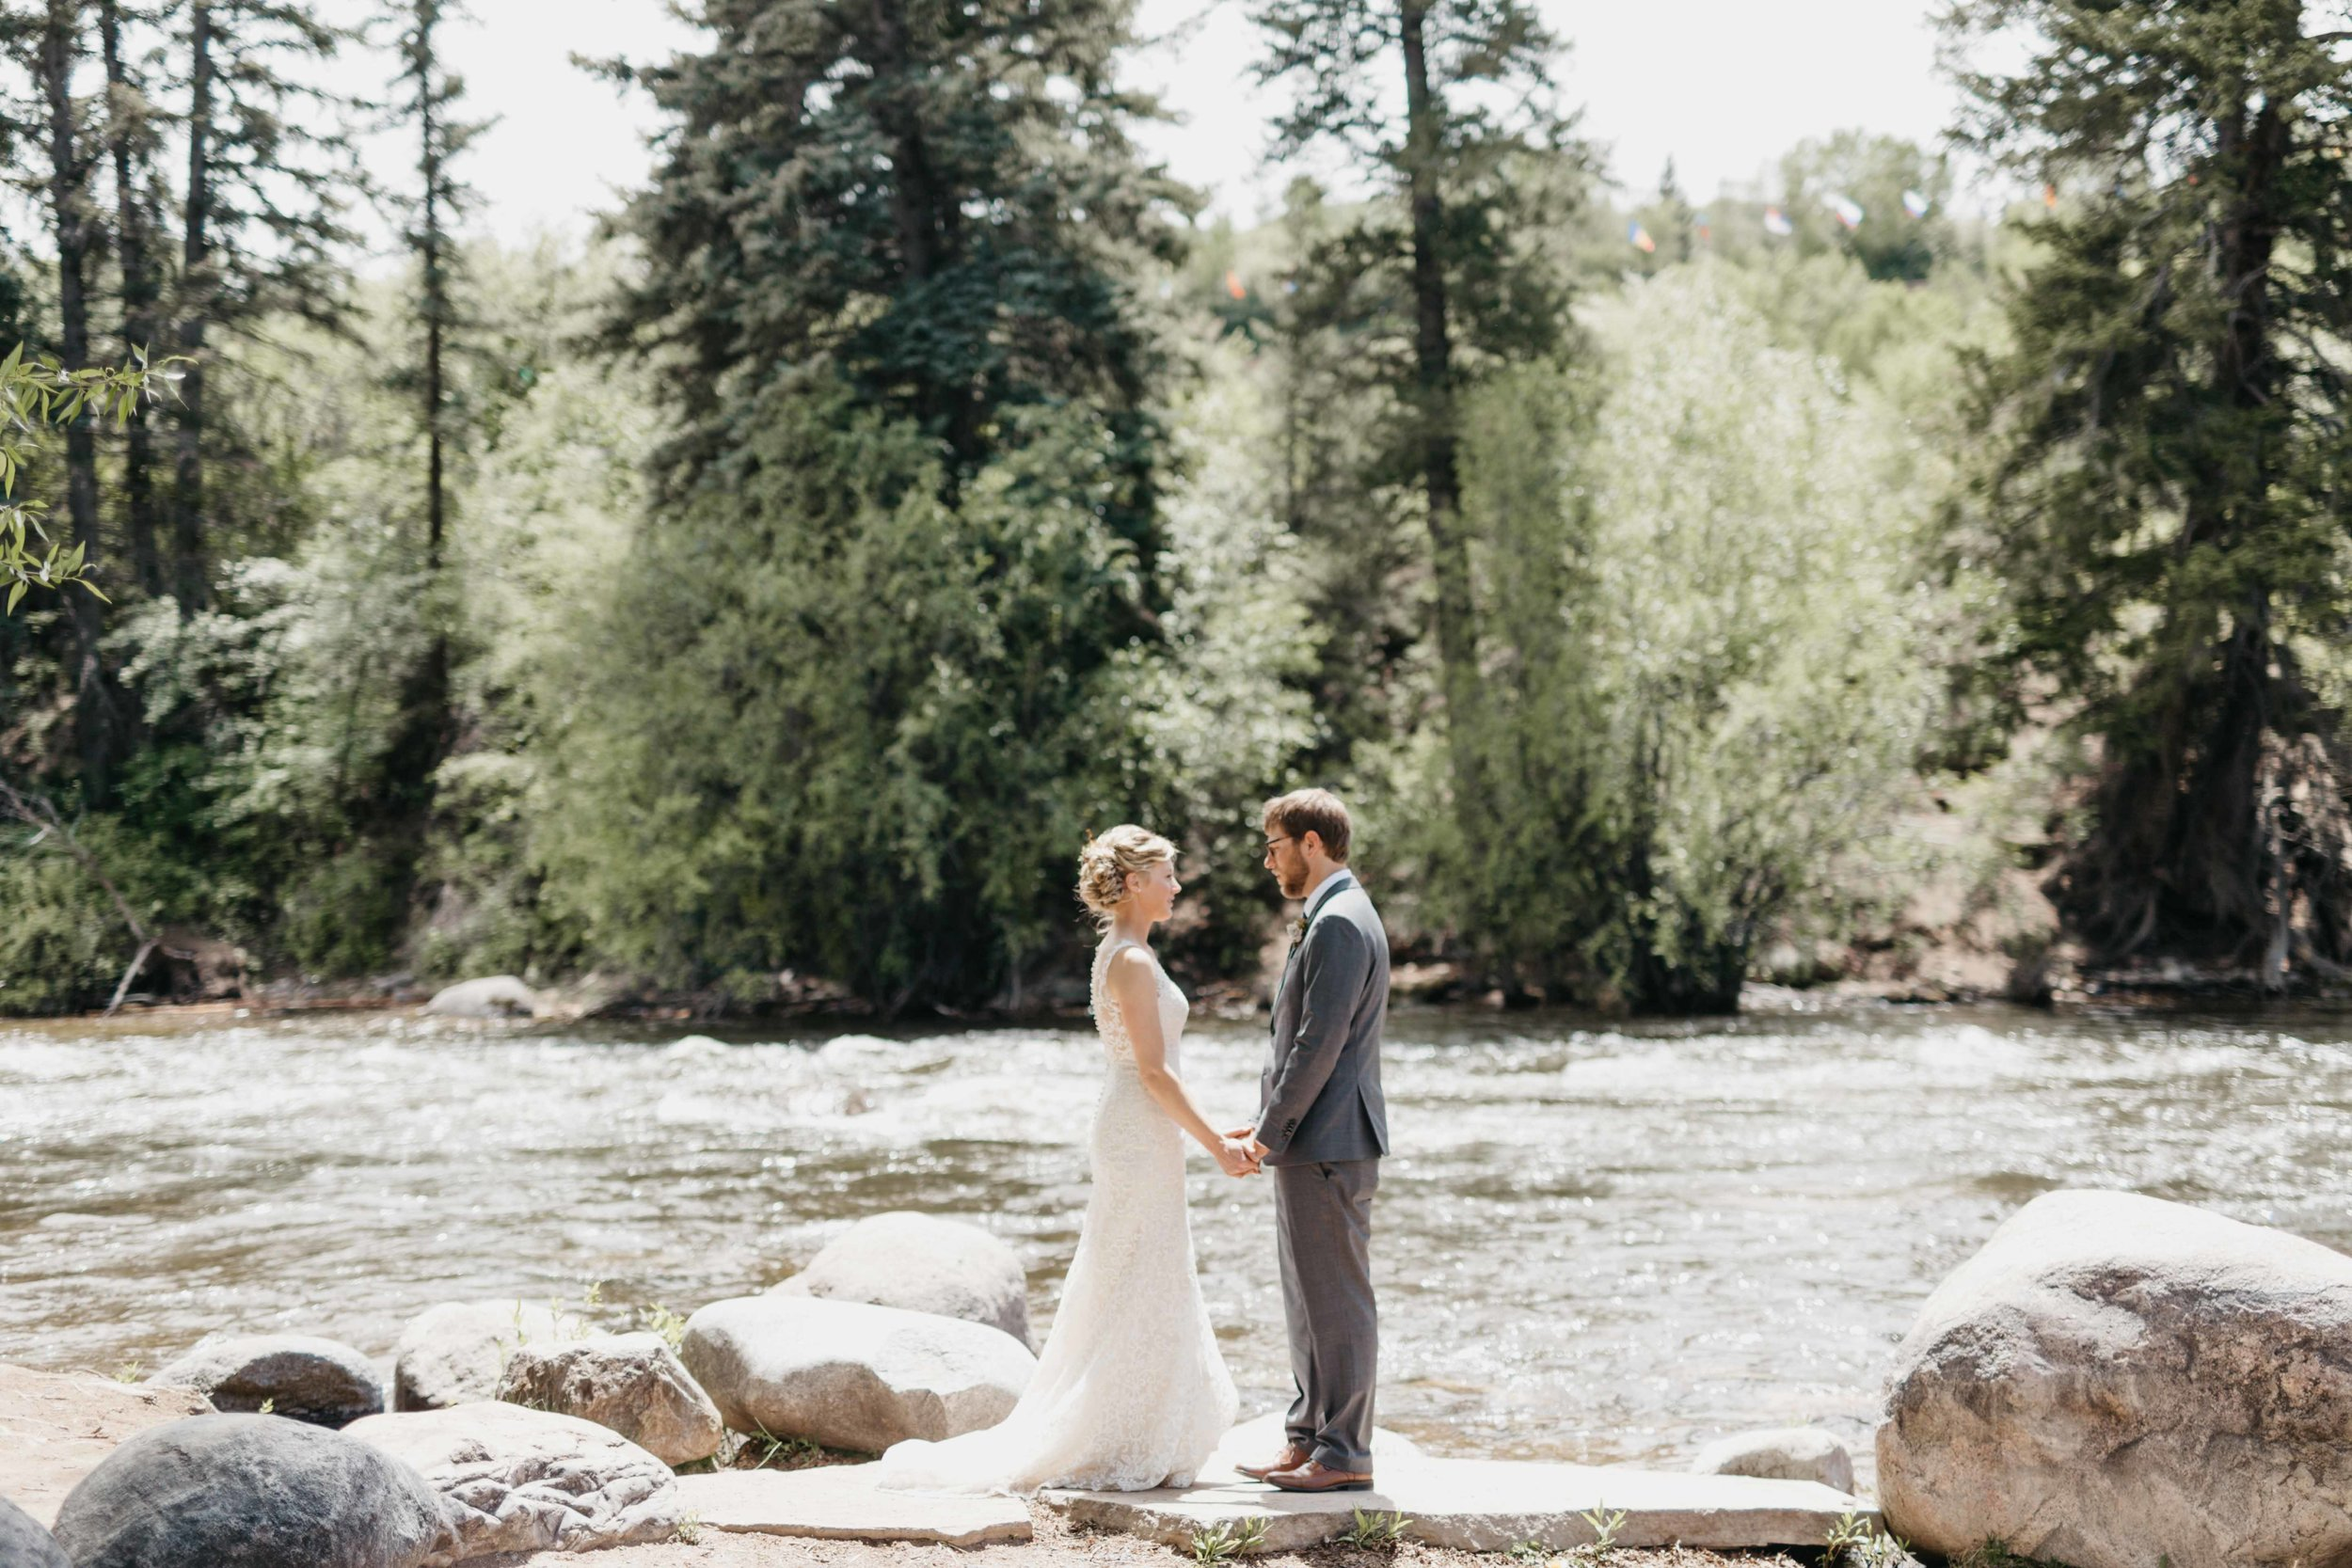 Colorado-Wedding-Photographer-35.jpg